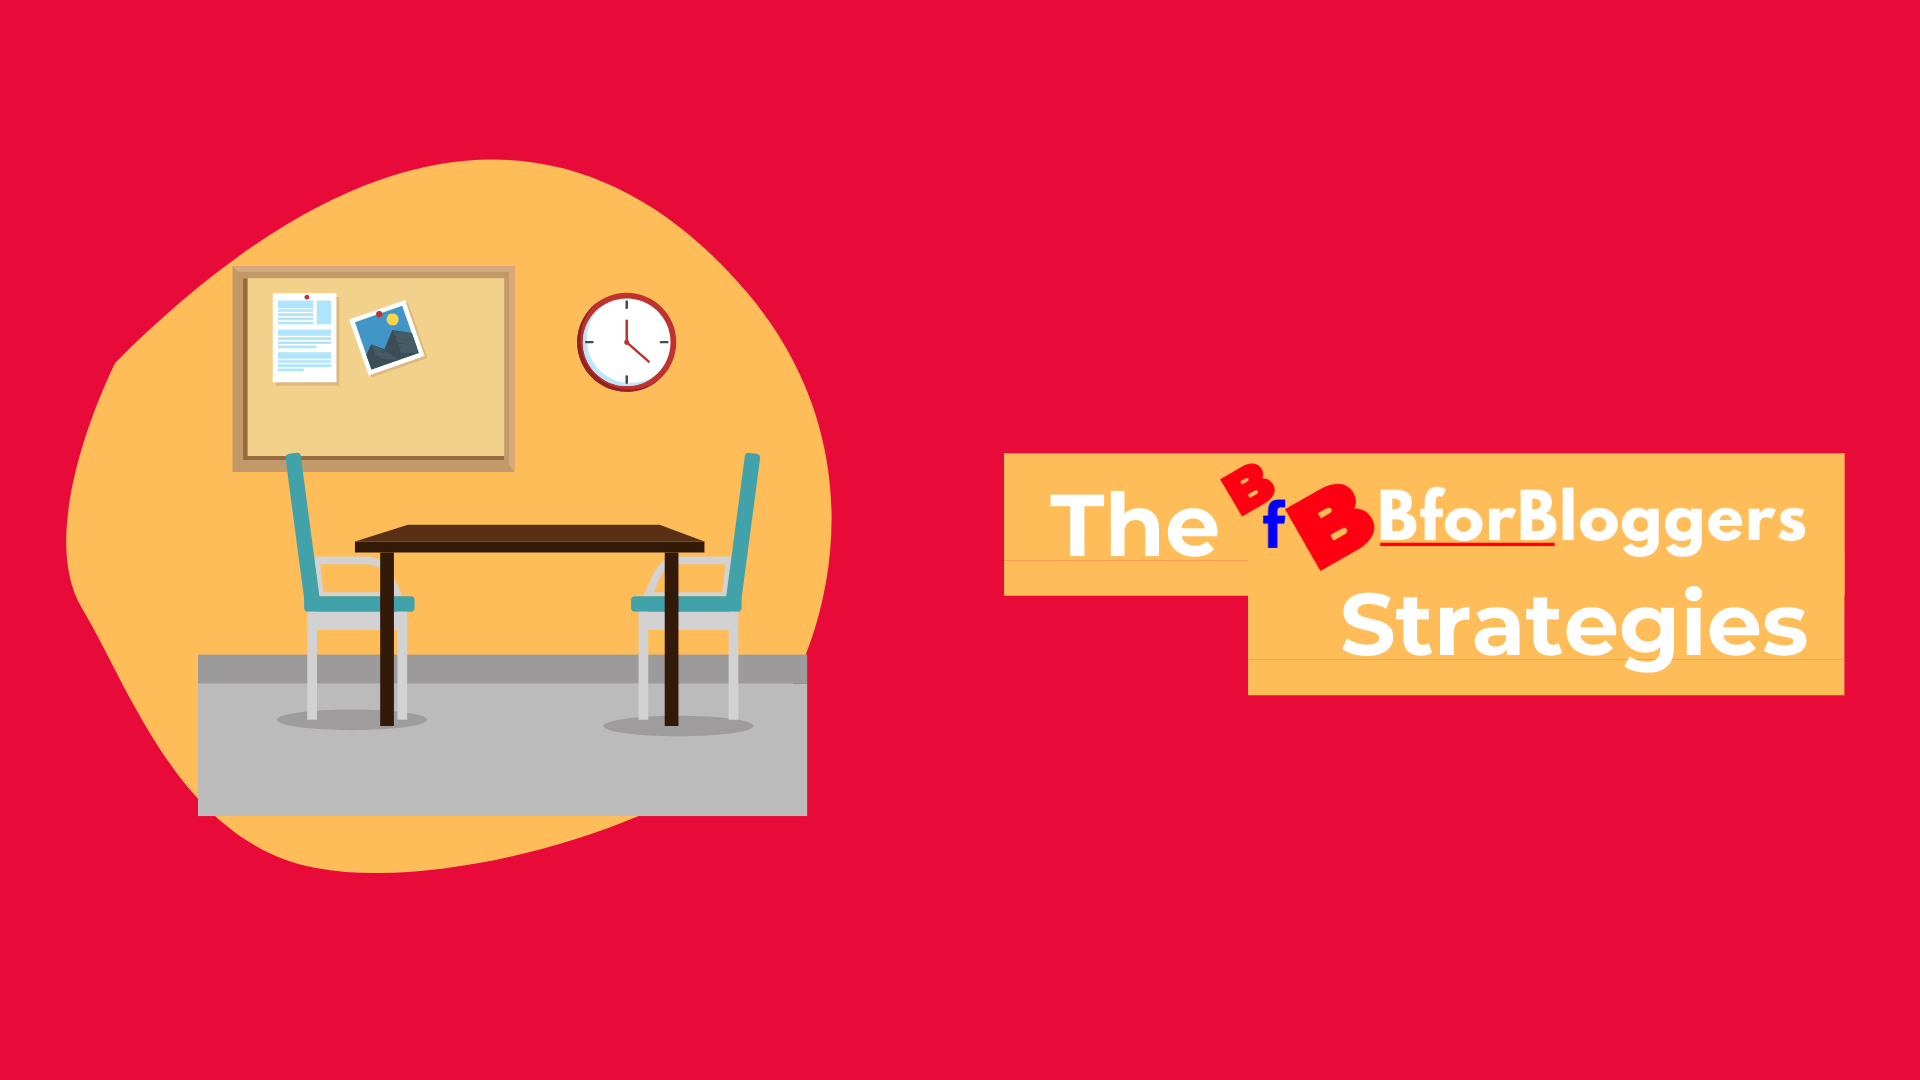 The-BforBloggers-strategies-guides